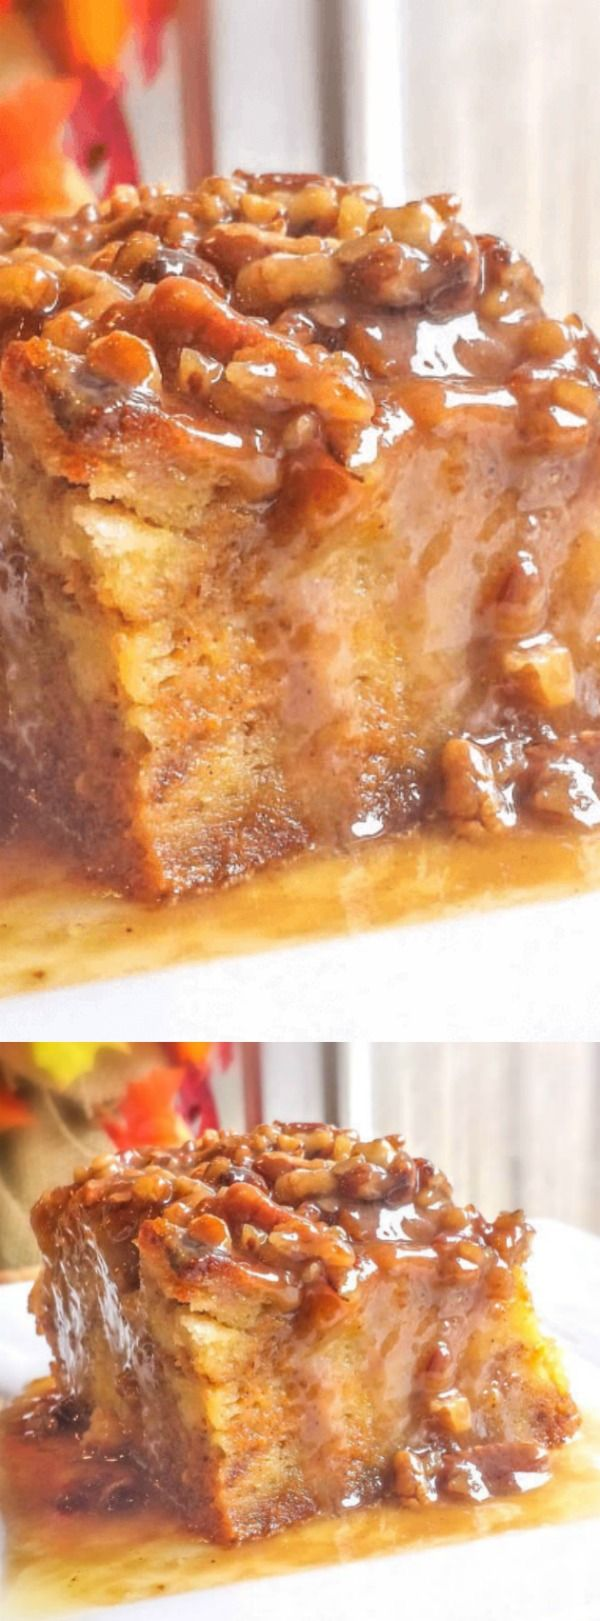 This Pumpkin Praline Bread Pudding recipe from Flavor Mosaic is one heck of an impressive dessert! It's so incredibly easy to make and it comes out of the oven rich and completely delicious.